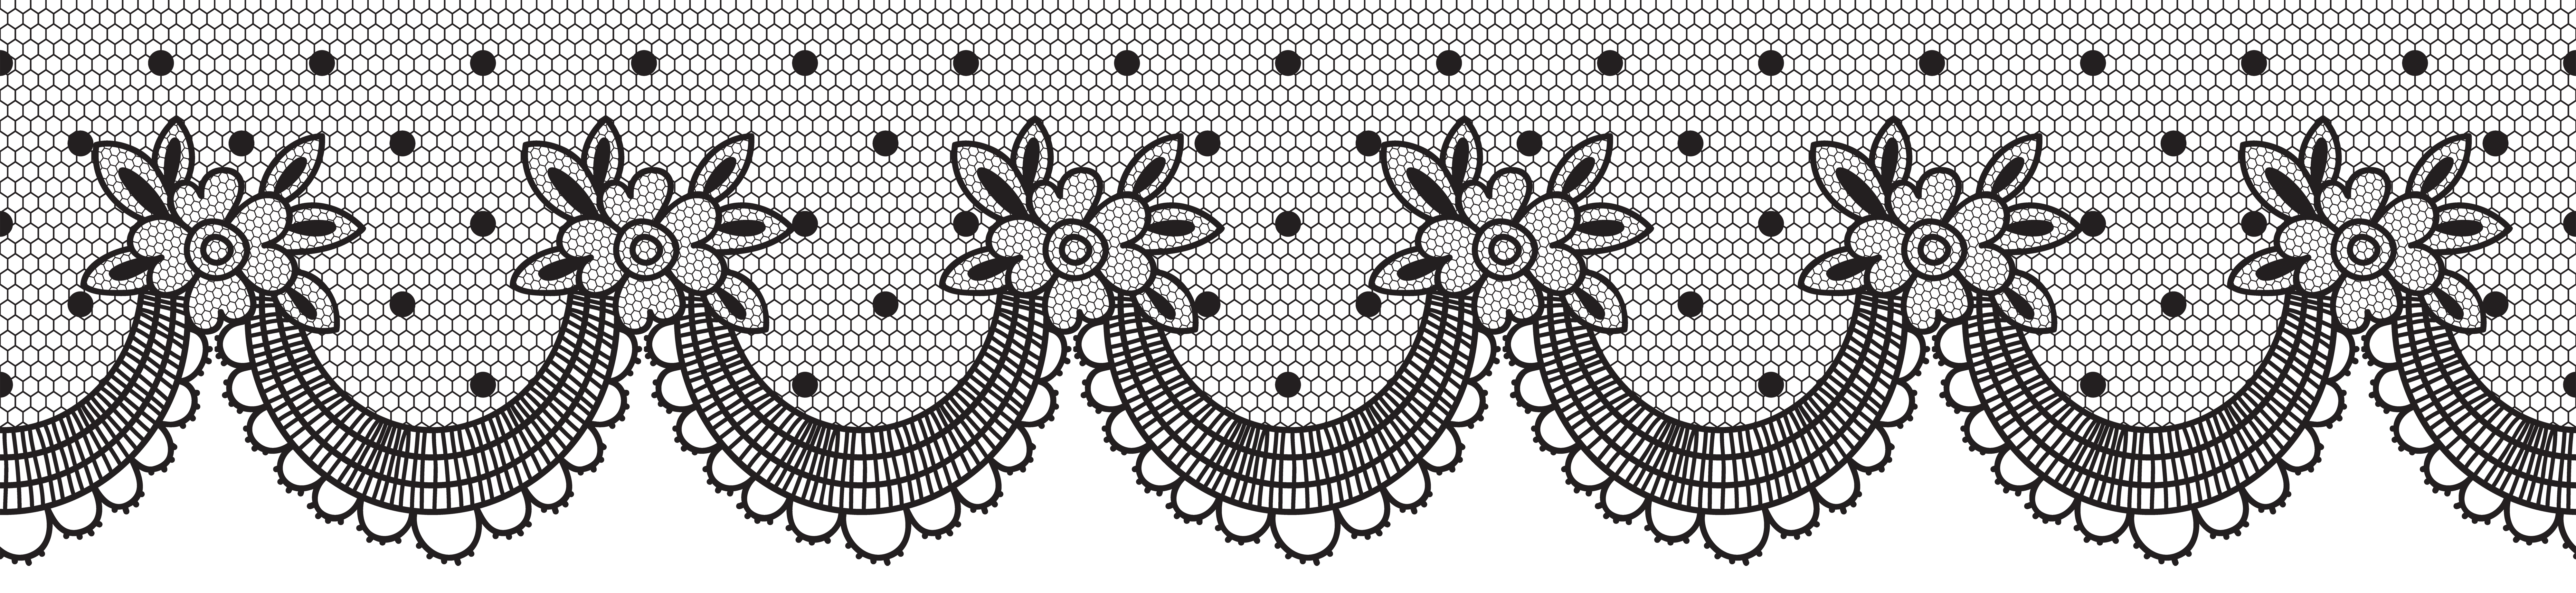 Lace transparent png. Collection of clipart